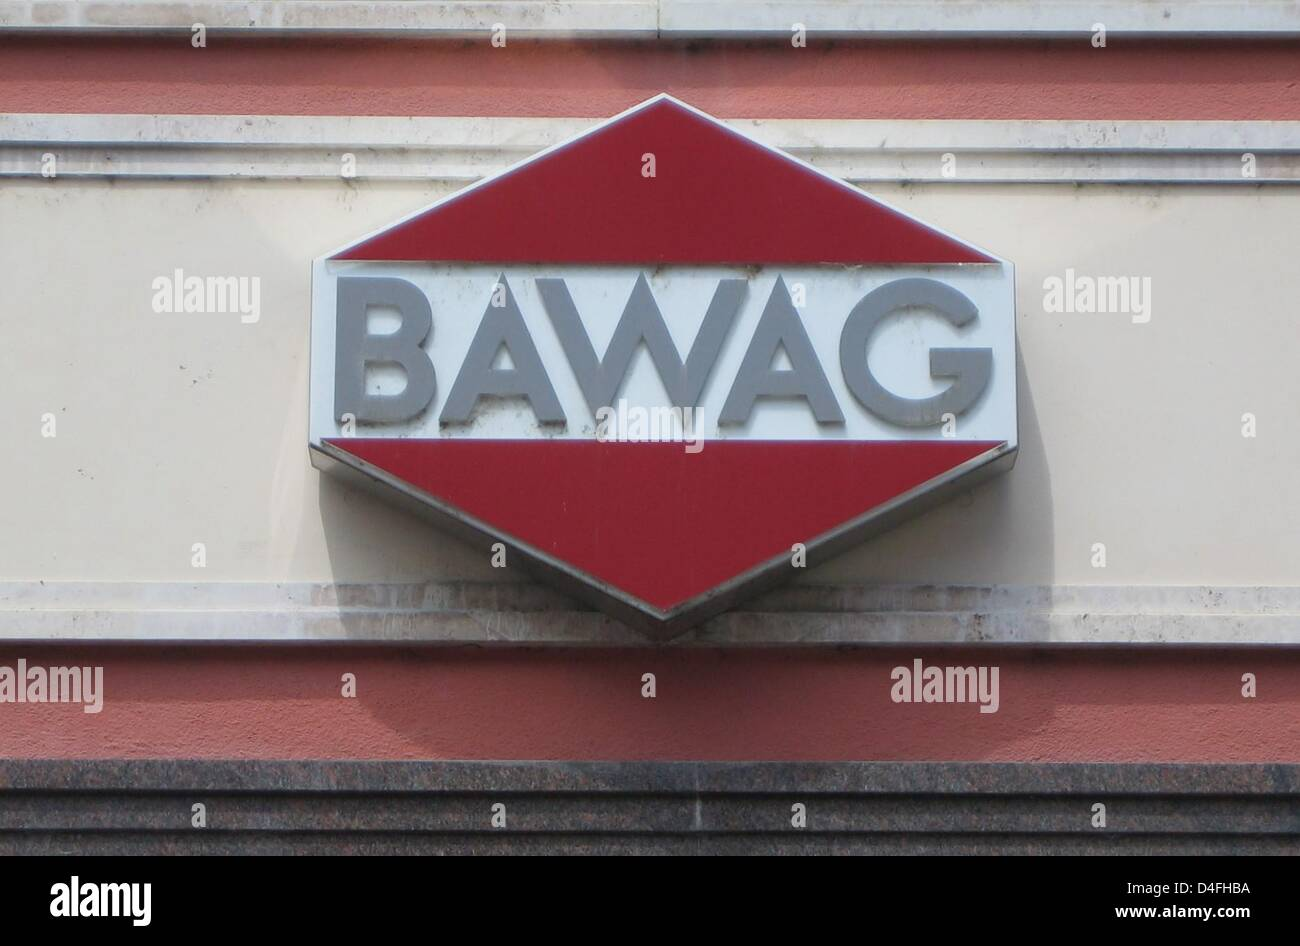 The company logo of Austrian bank BAWAG (Bank fuer Arbeit und Wirtschaft) ('Bank for Work and Economy') - Stock Image